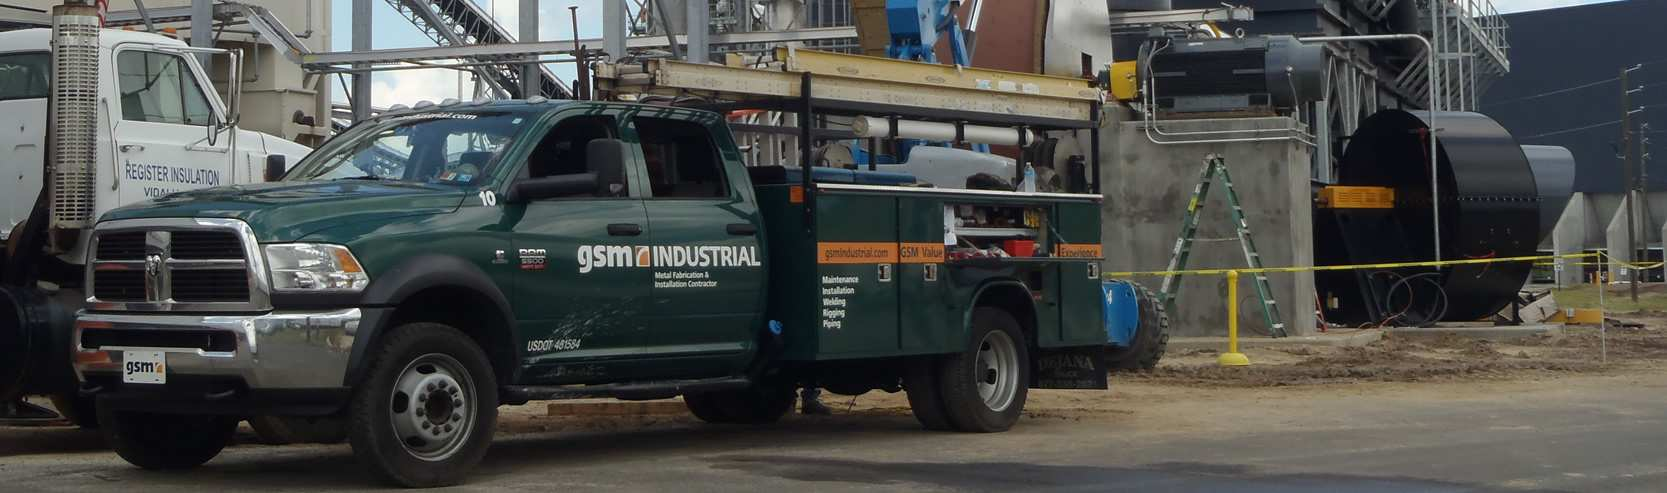 GSM Industrial Truck in the Field